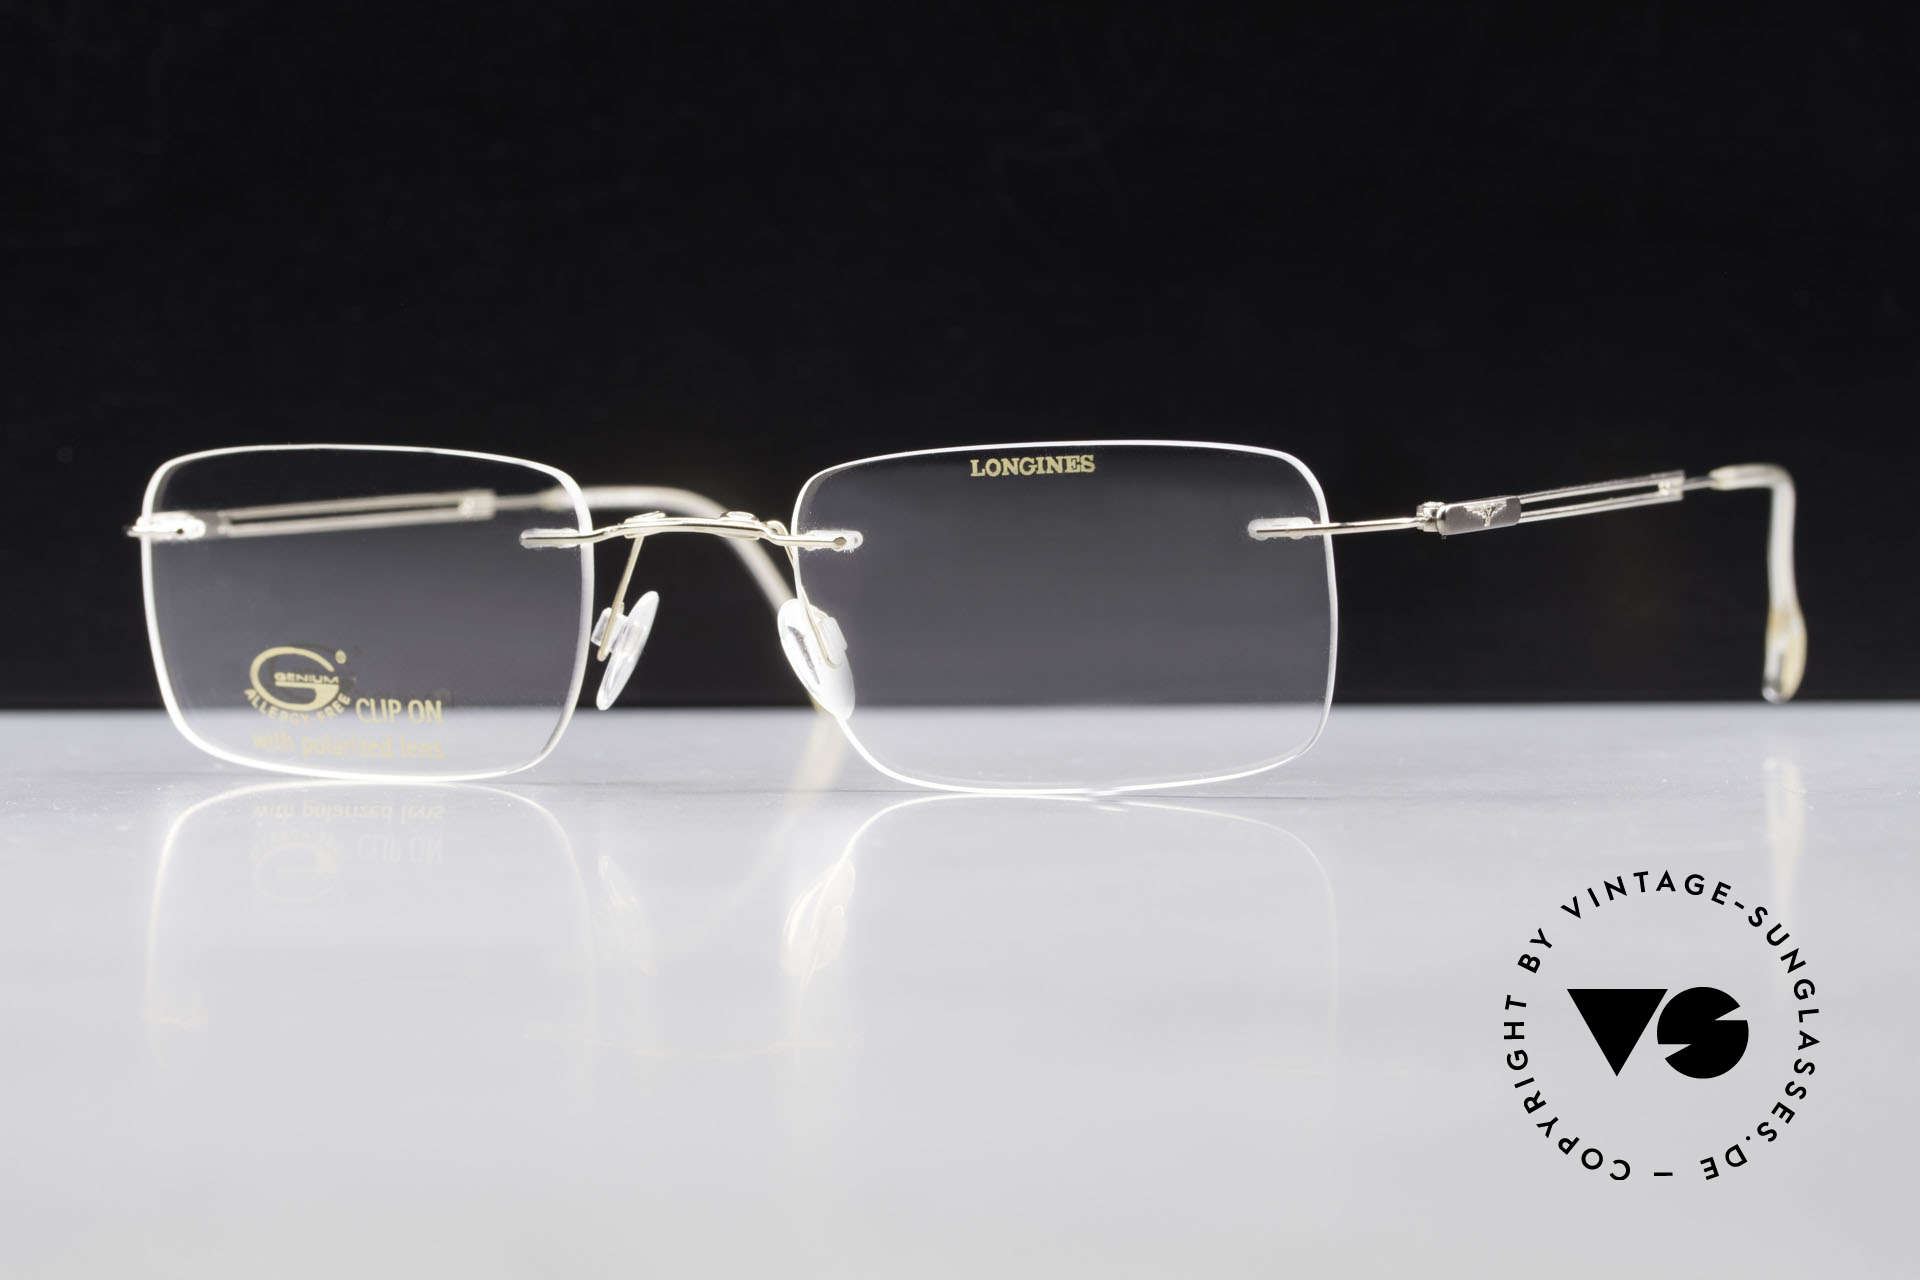 Longines 4367 Polarized Glasses Rimless 90s, Clip-On with green polarized lenses; 100% UV protect., Made for Men